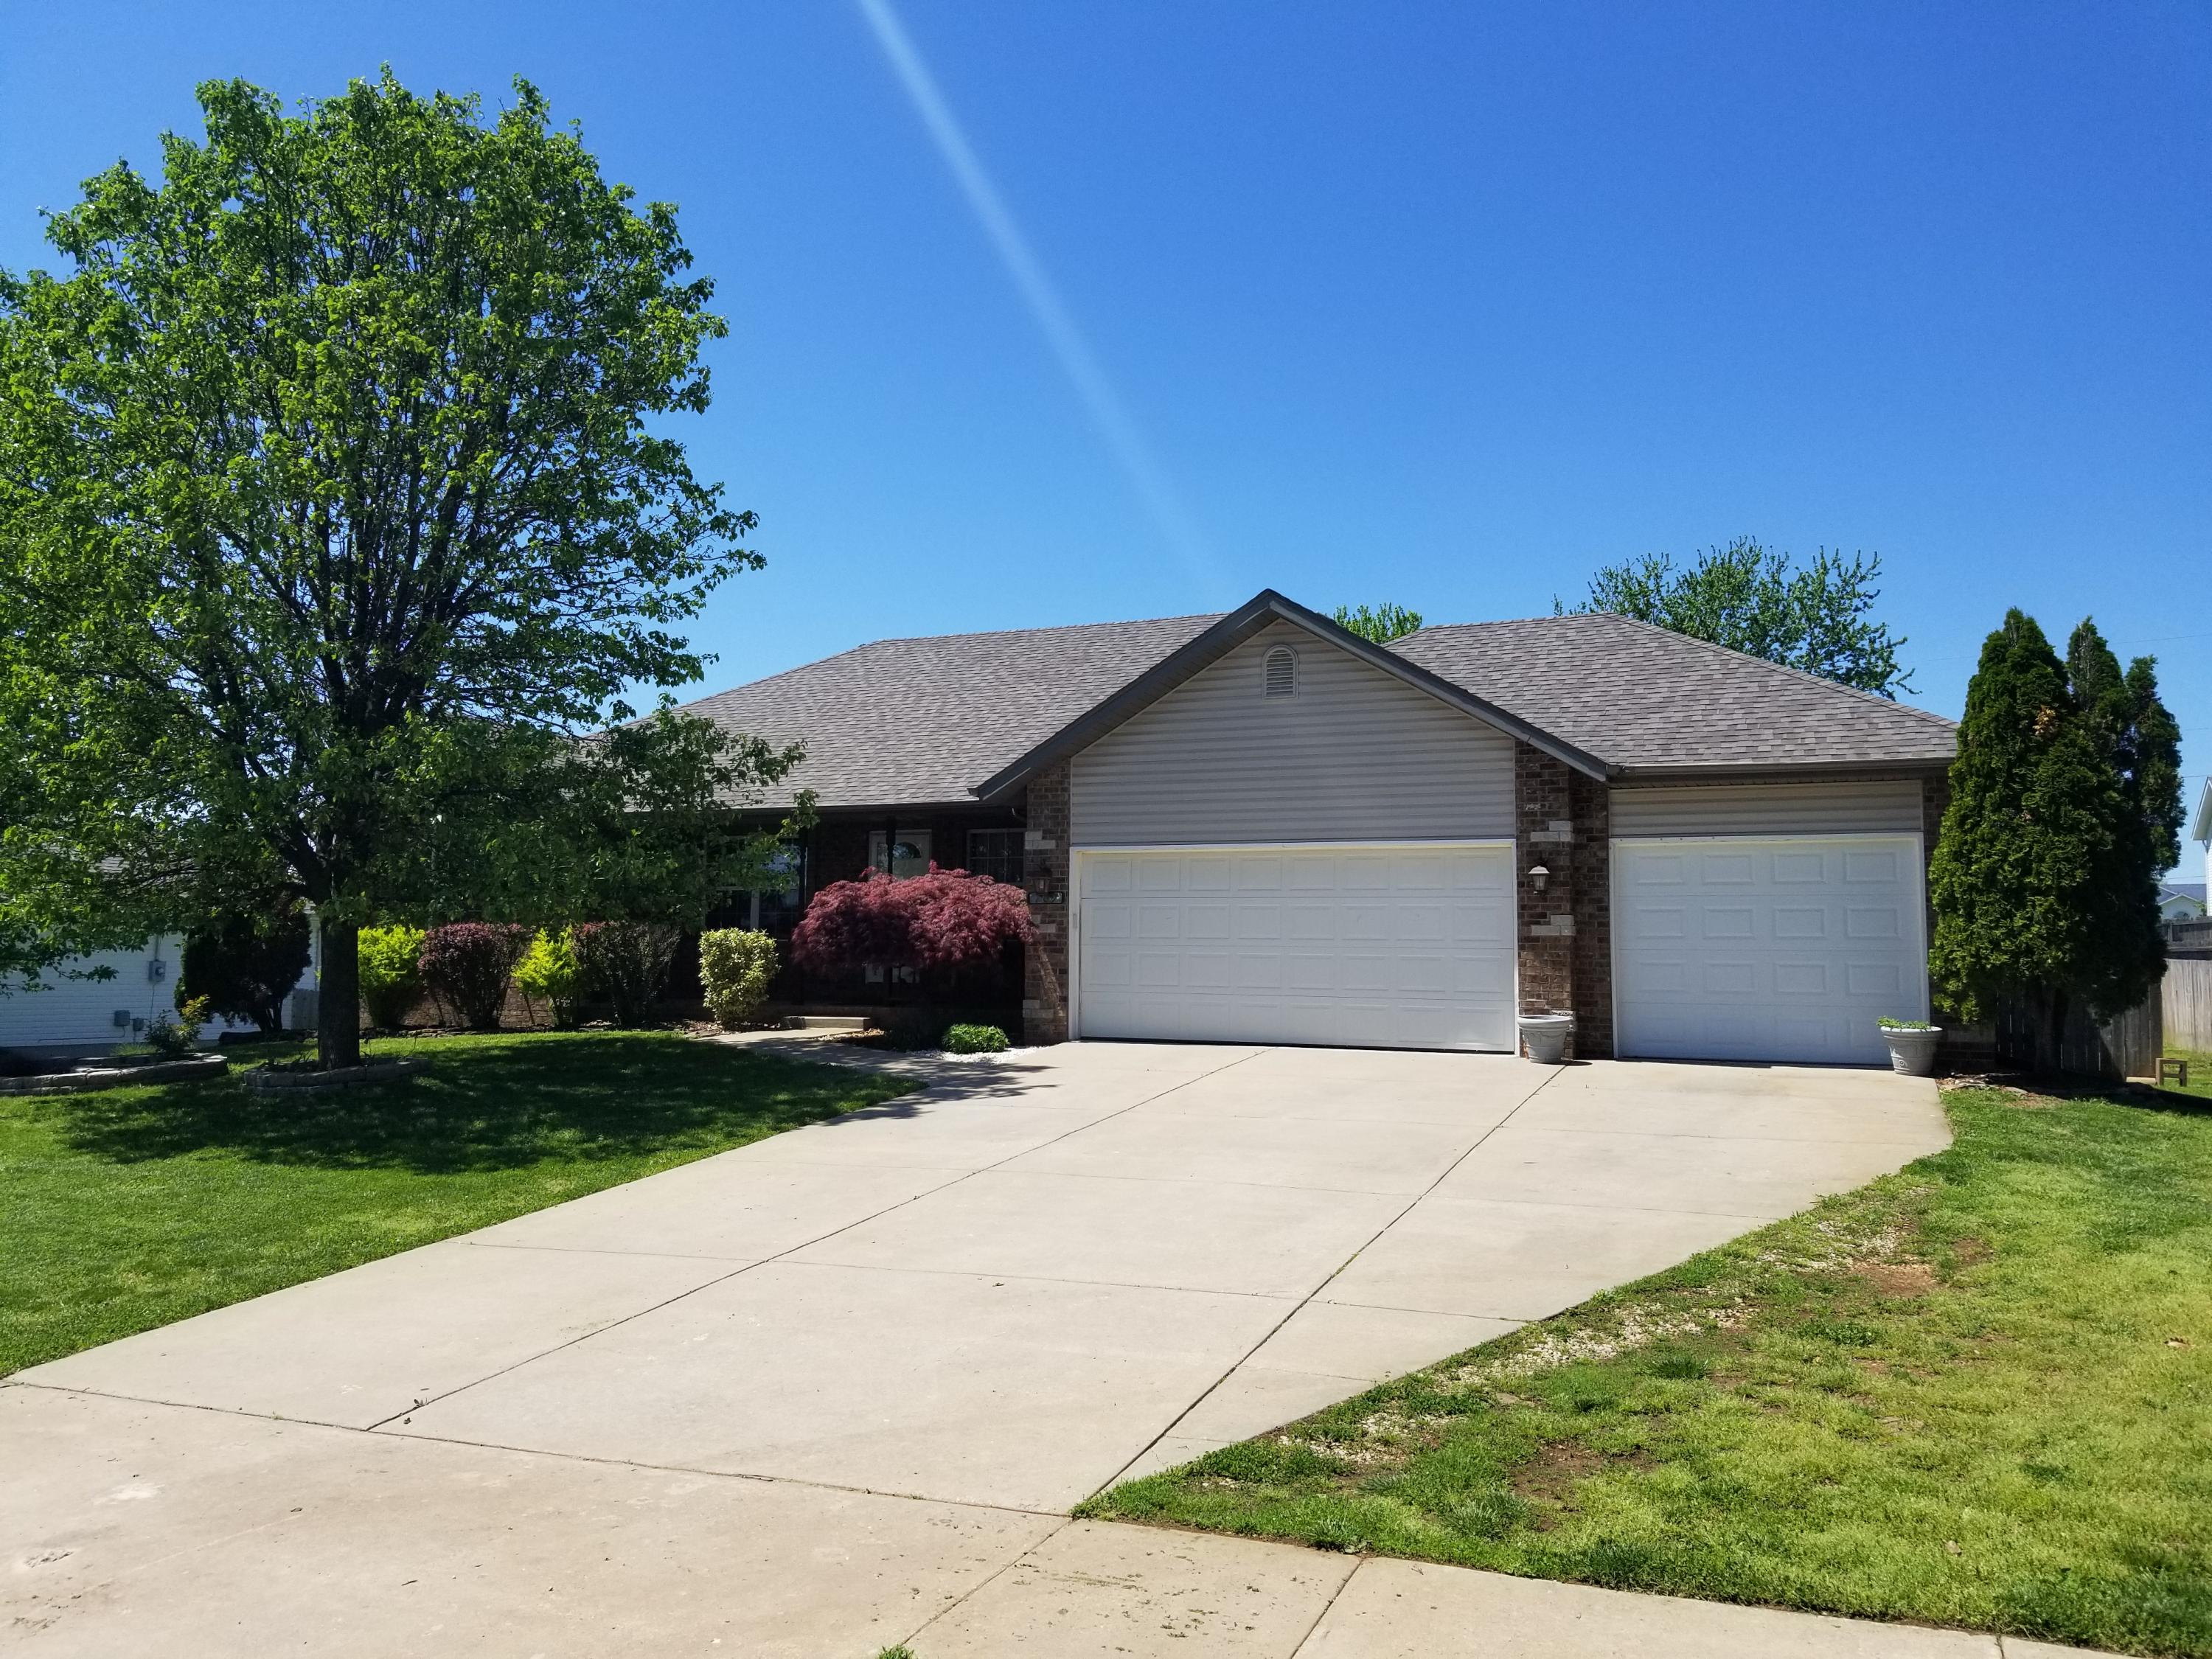 709 Berry Lane Willard, MO 65781